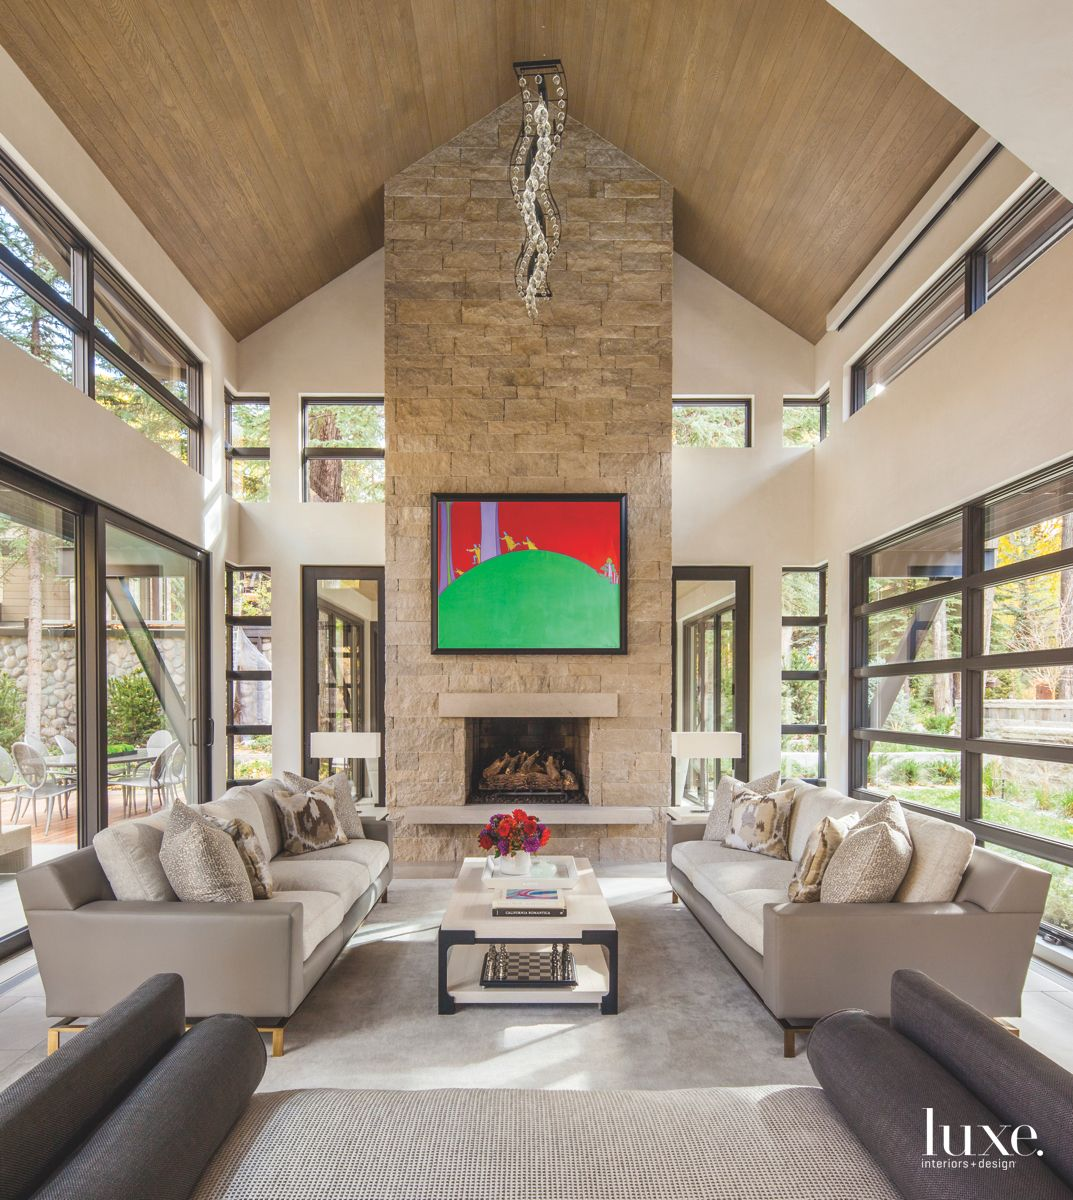 High Vaulted Ceiling Living Room with Stone Fireplace and Dangling Artwork